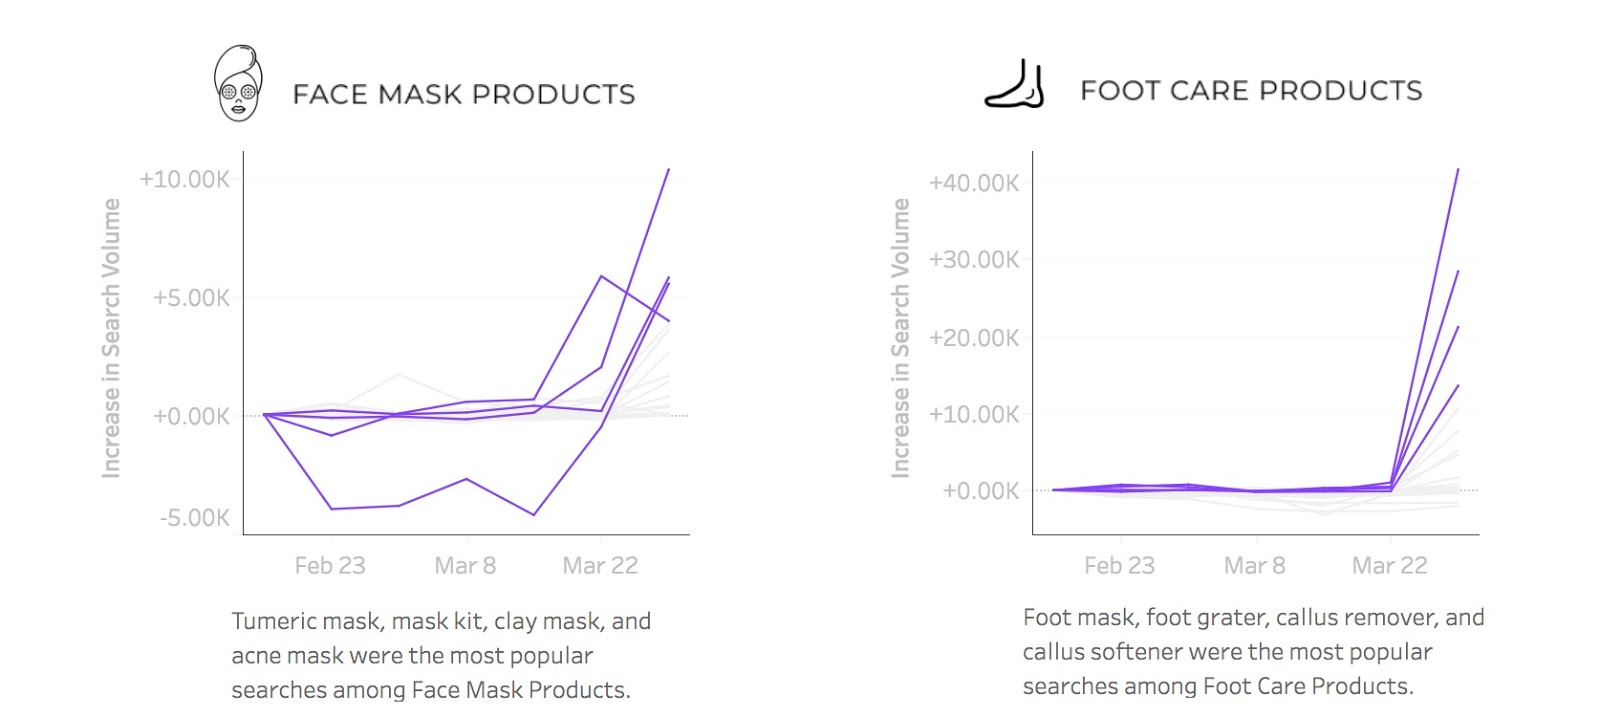 Search trends - Foot care search graph by Spate